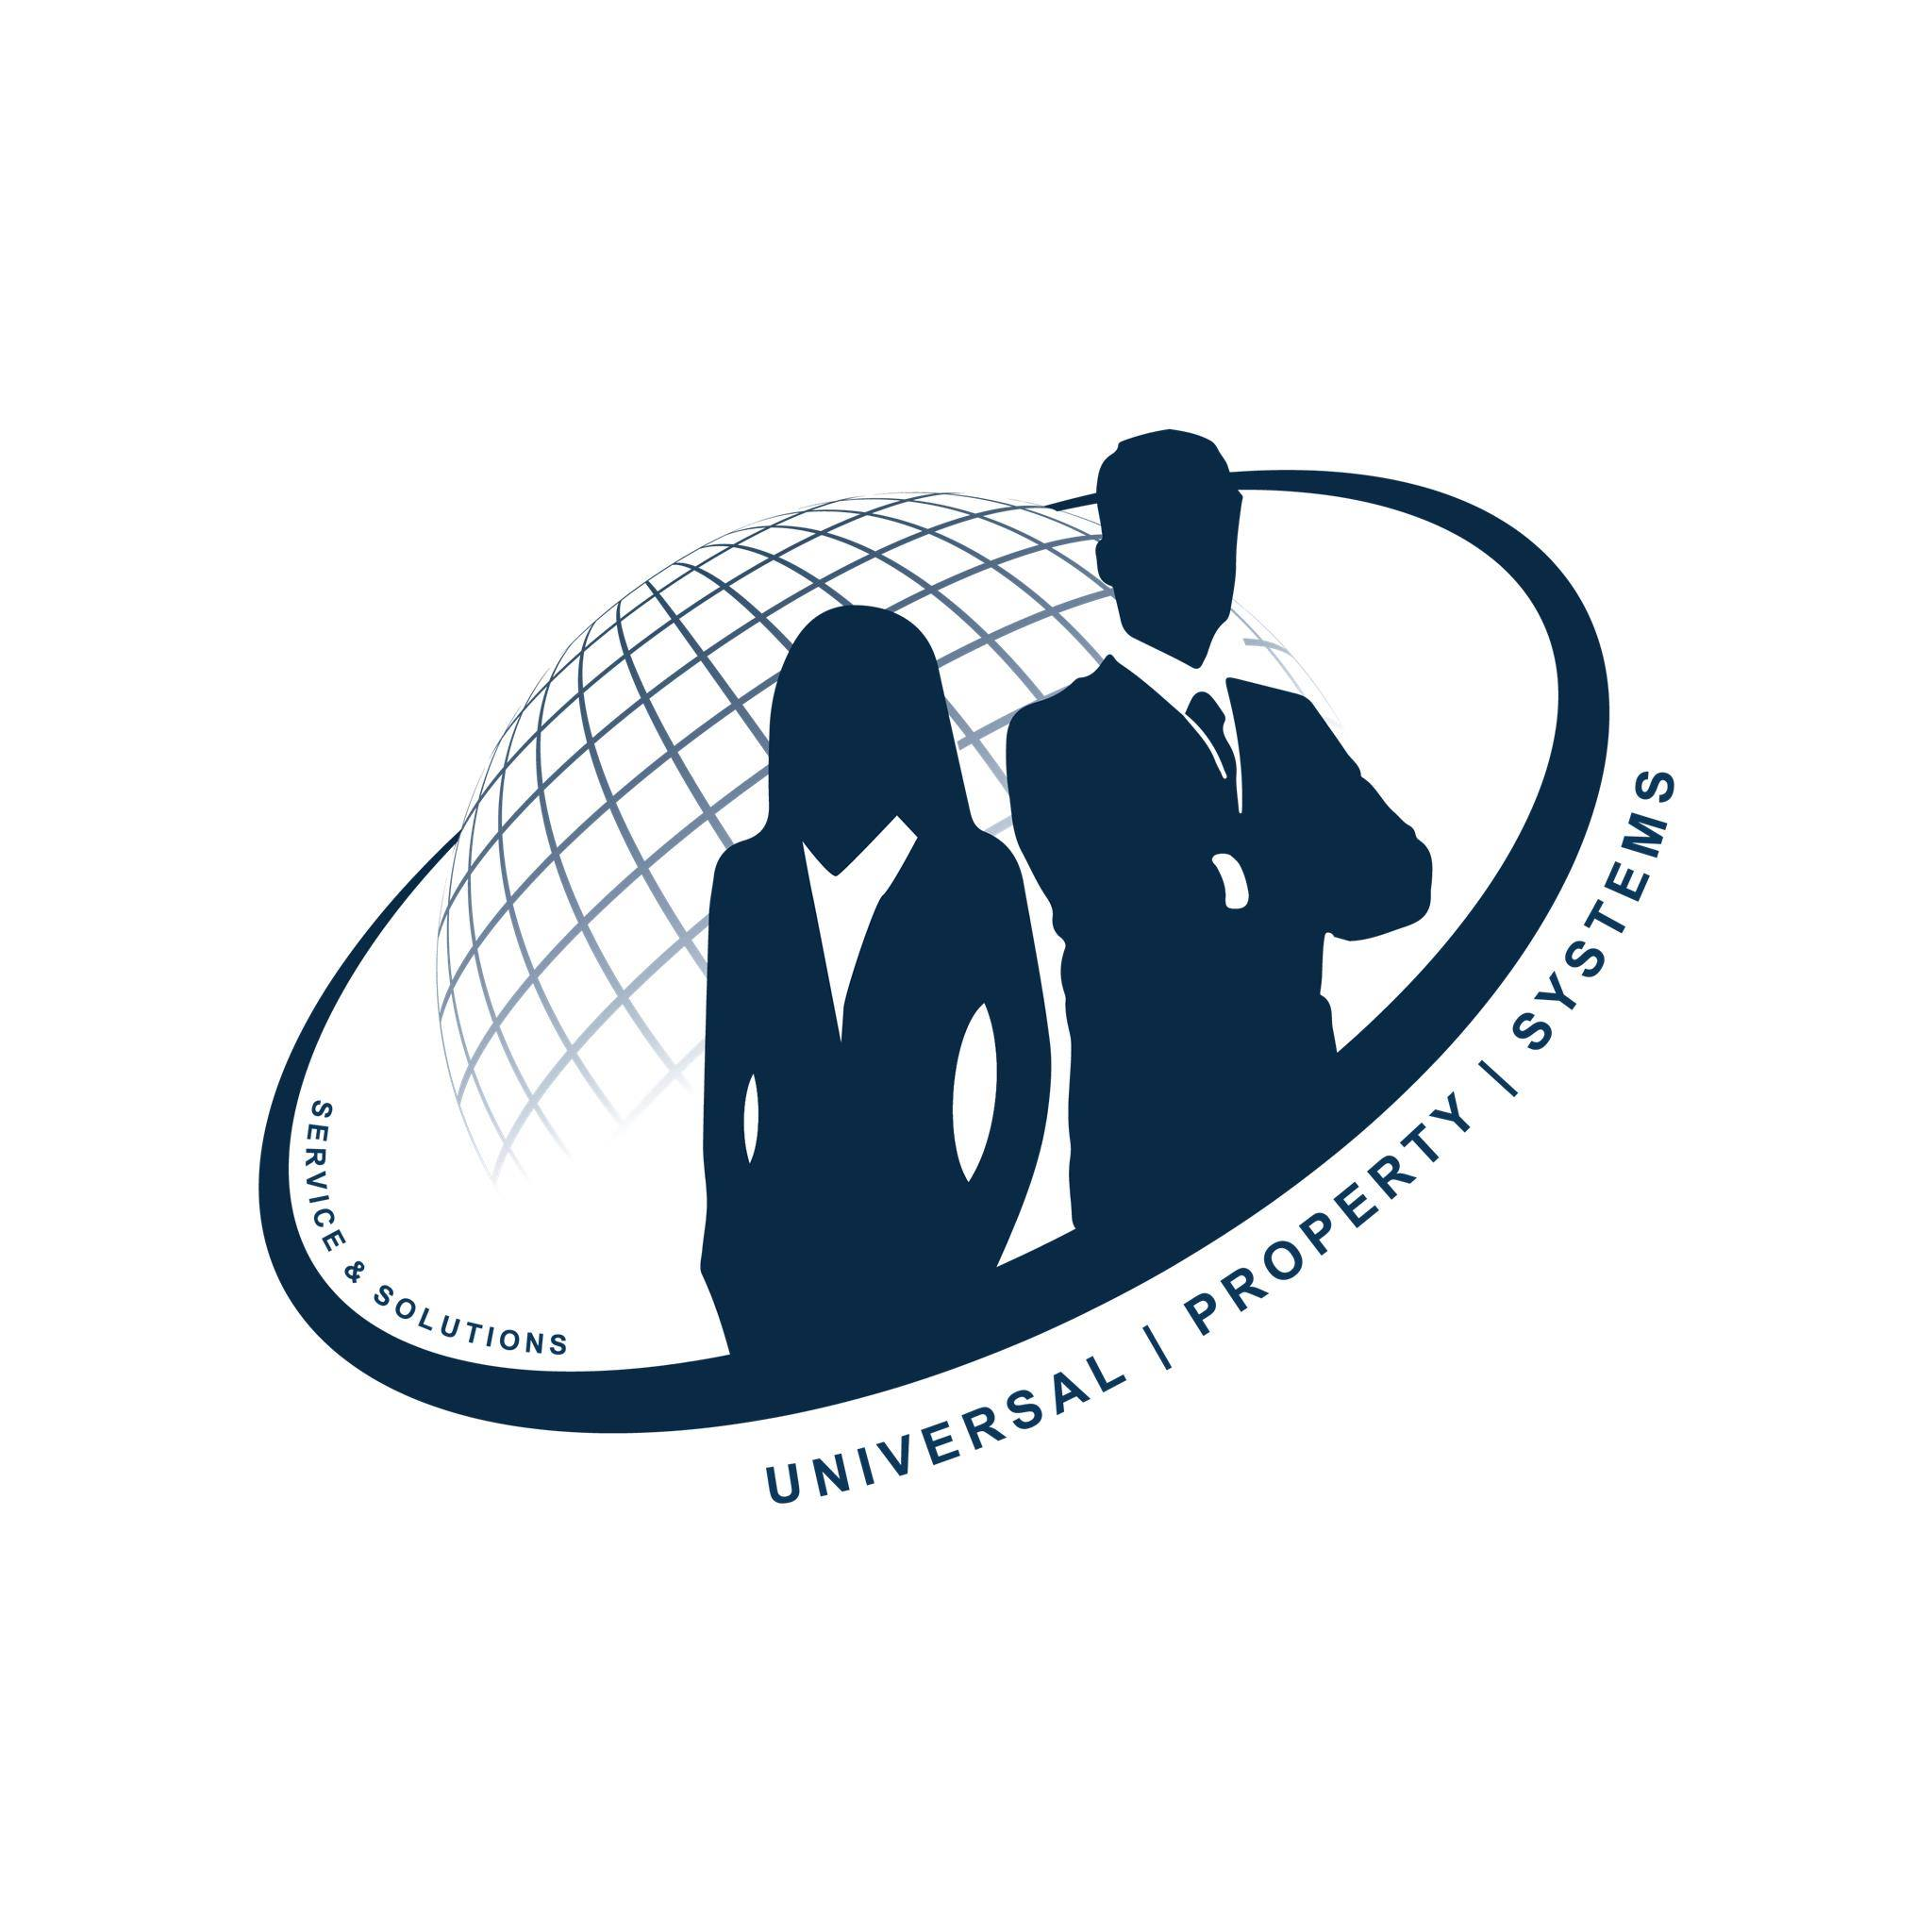 Universal Property Systems